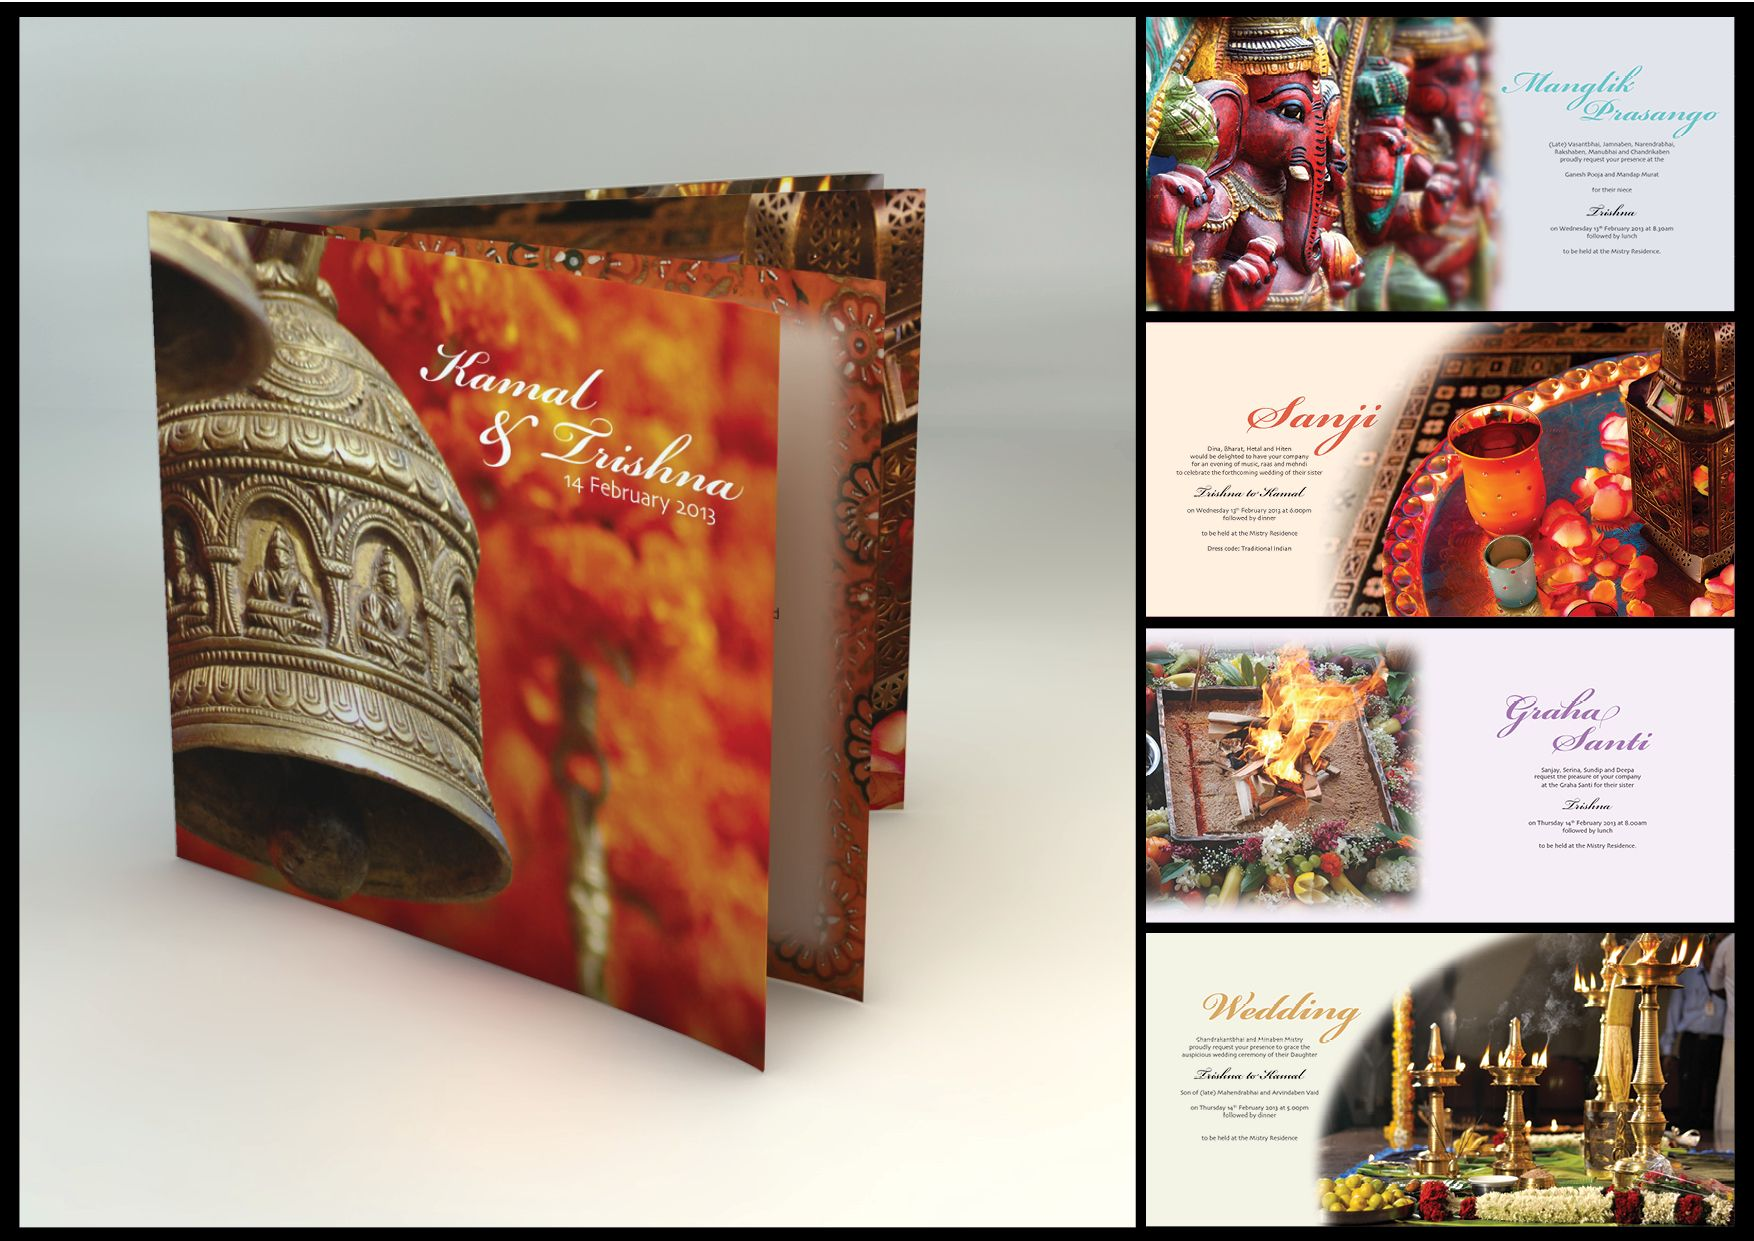 indian wedding hindu invitations%0A Wedding invitation for a Hindu wedding ceremony taking place in India   by  Doves  u